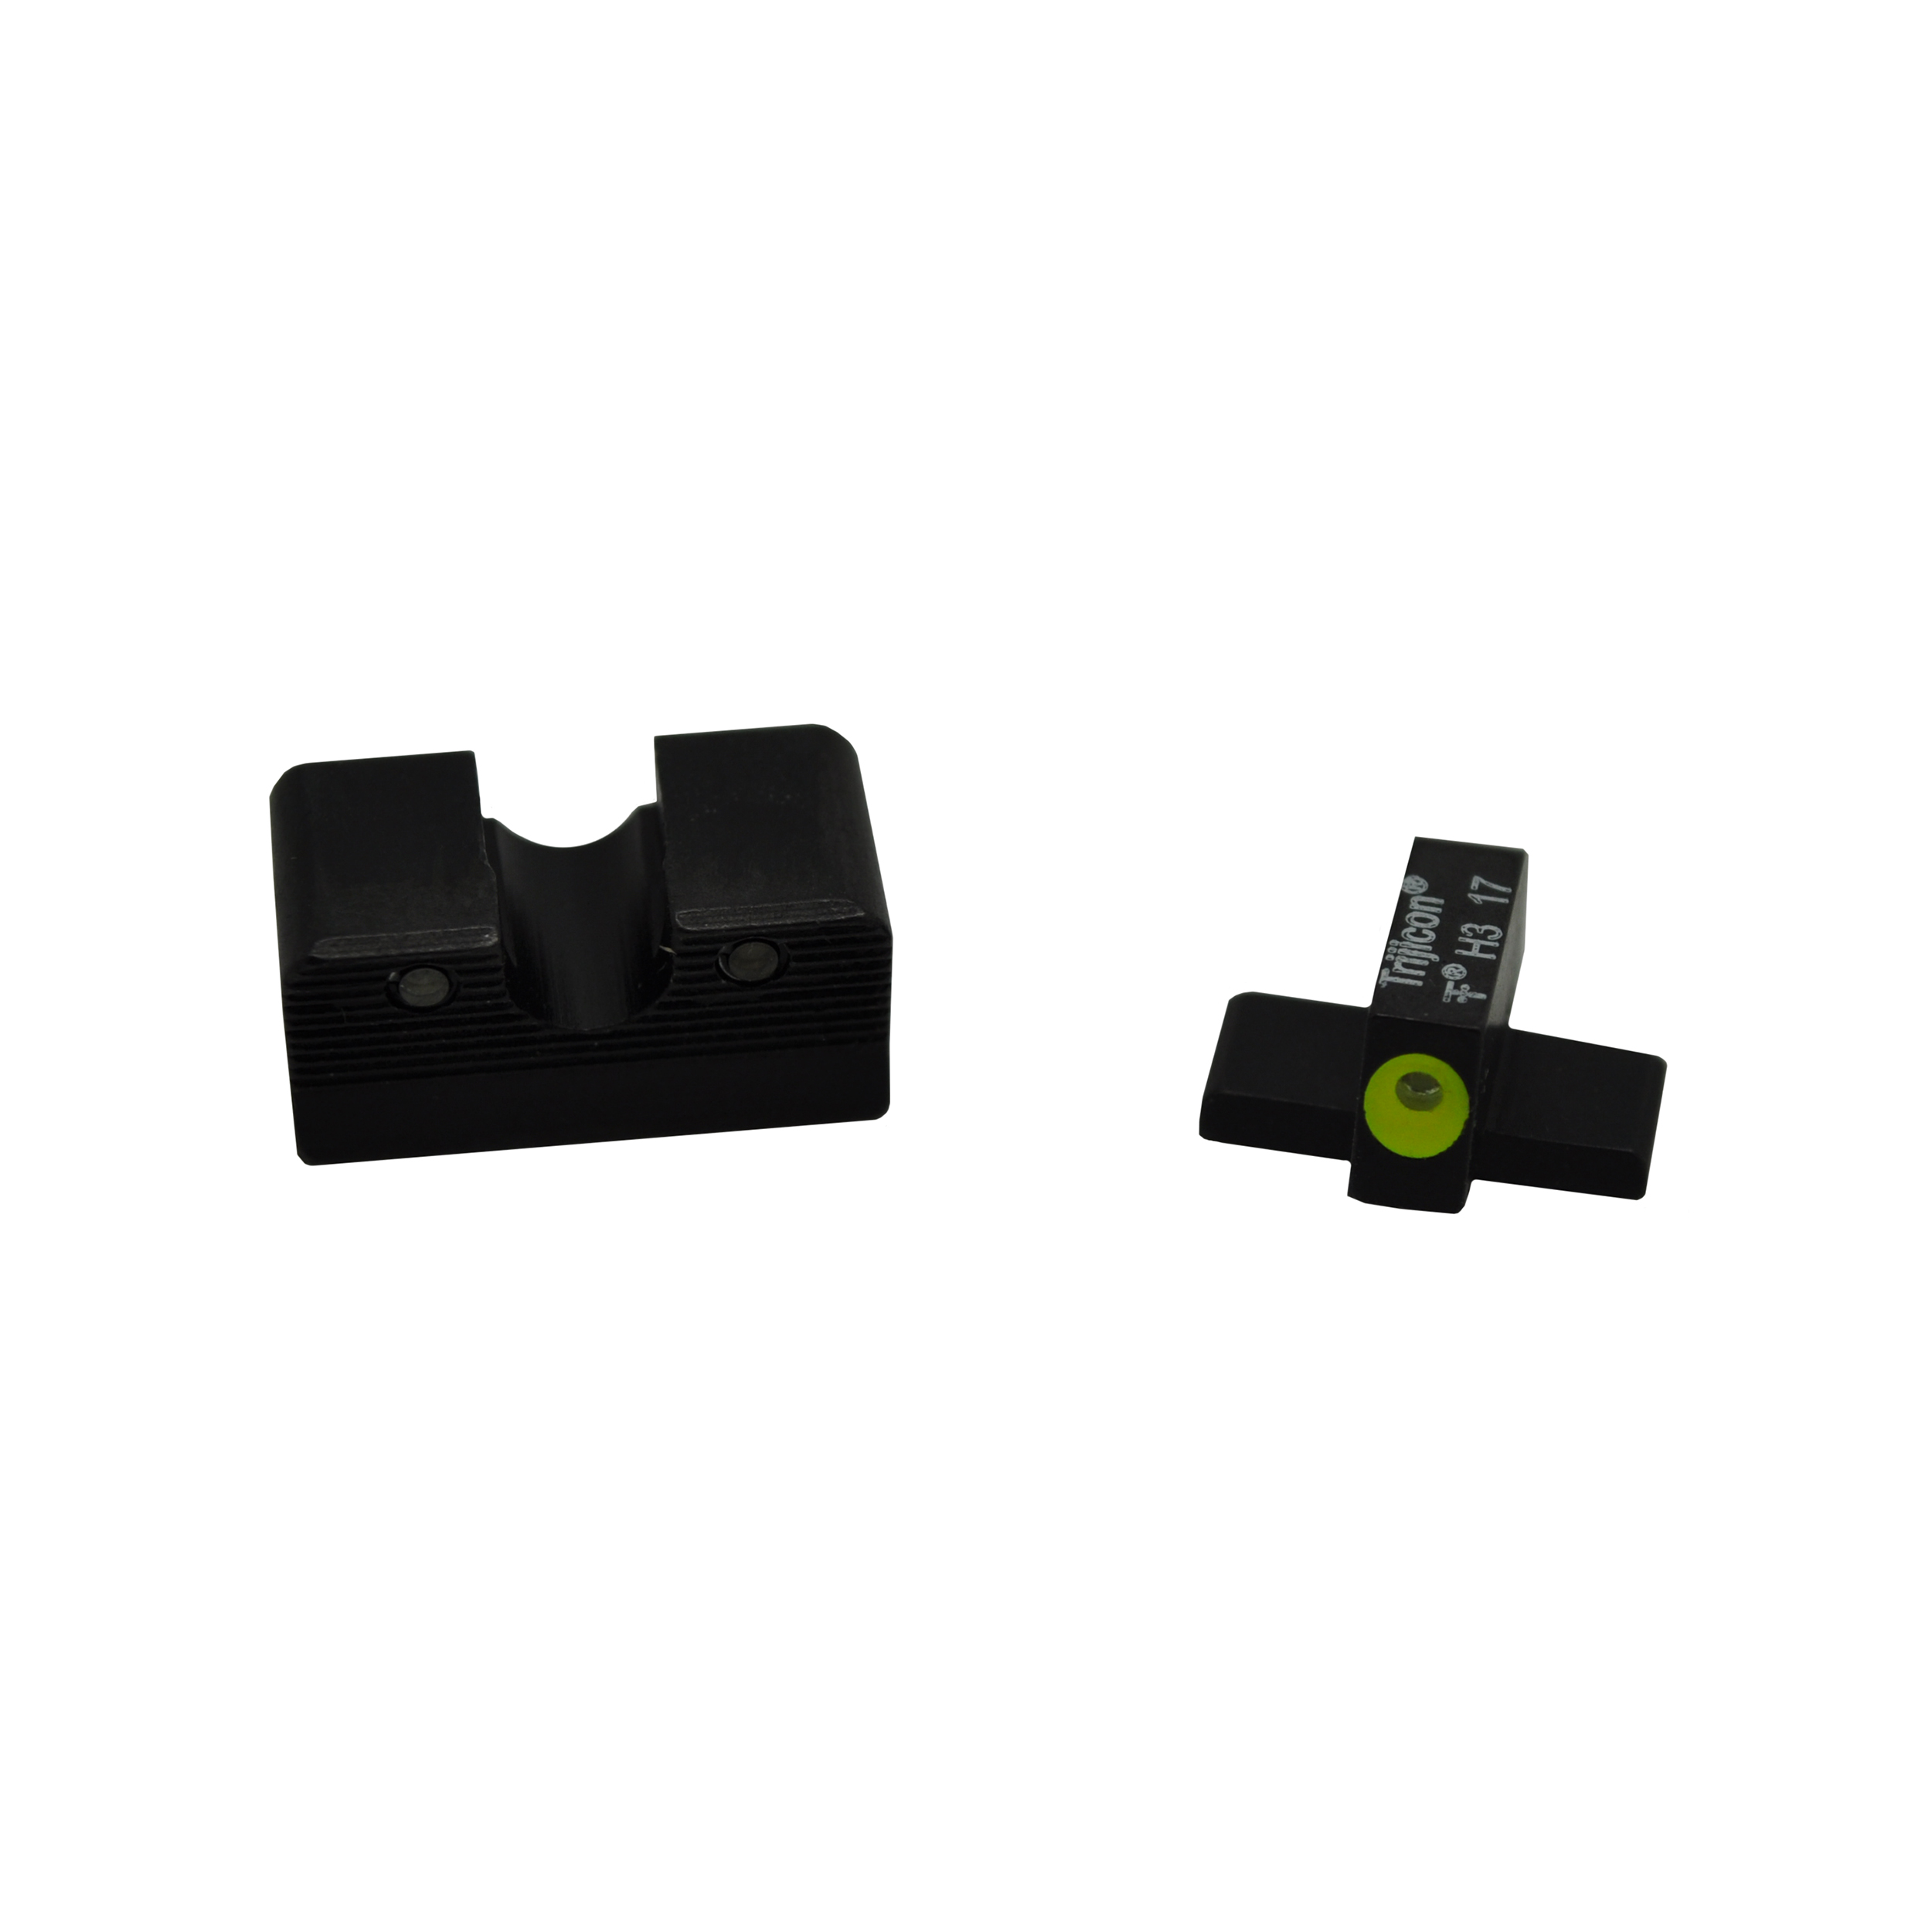 Trijicon HD XR Night Sight Set Springfield Armory XD-S Series, Yellow Front Outline Lamp by Trijicon